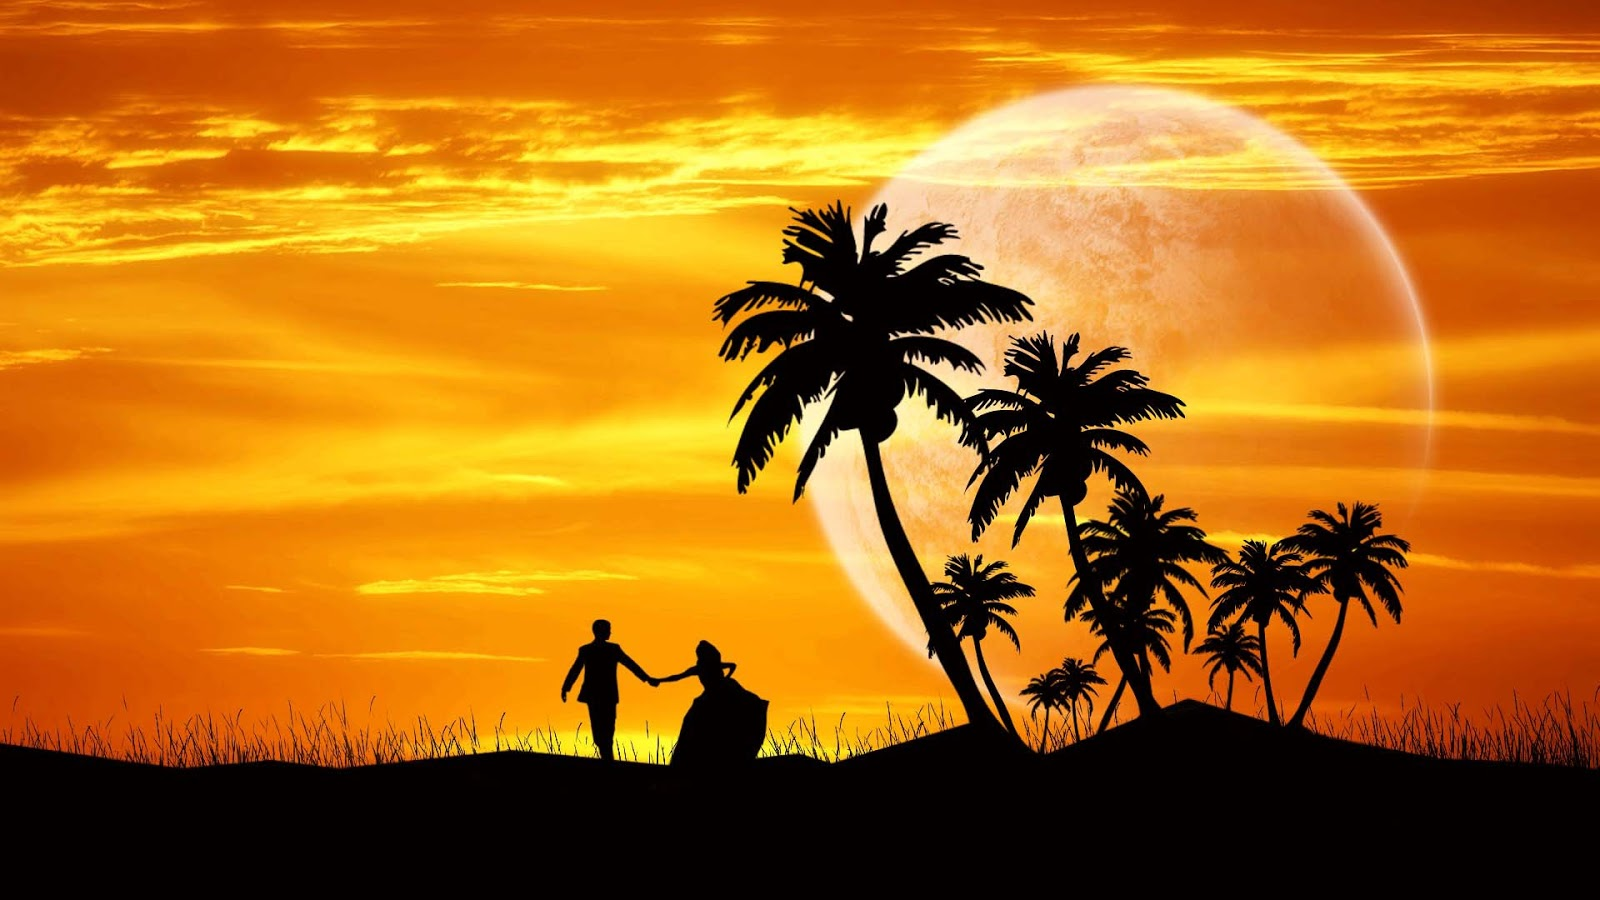 Lovely Couple Dance Evening 1920x1080 Wallpaper